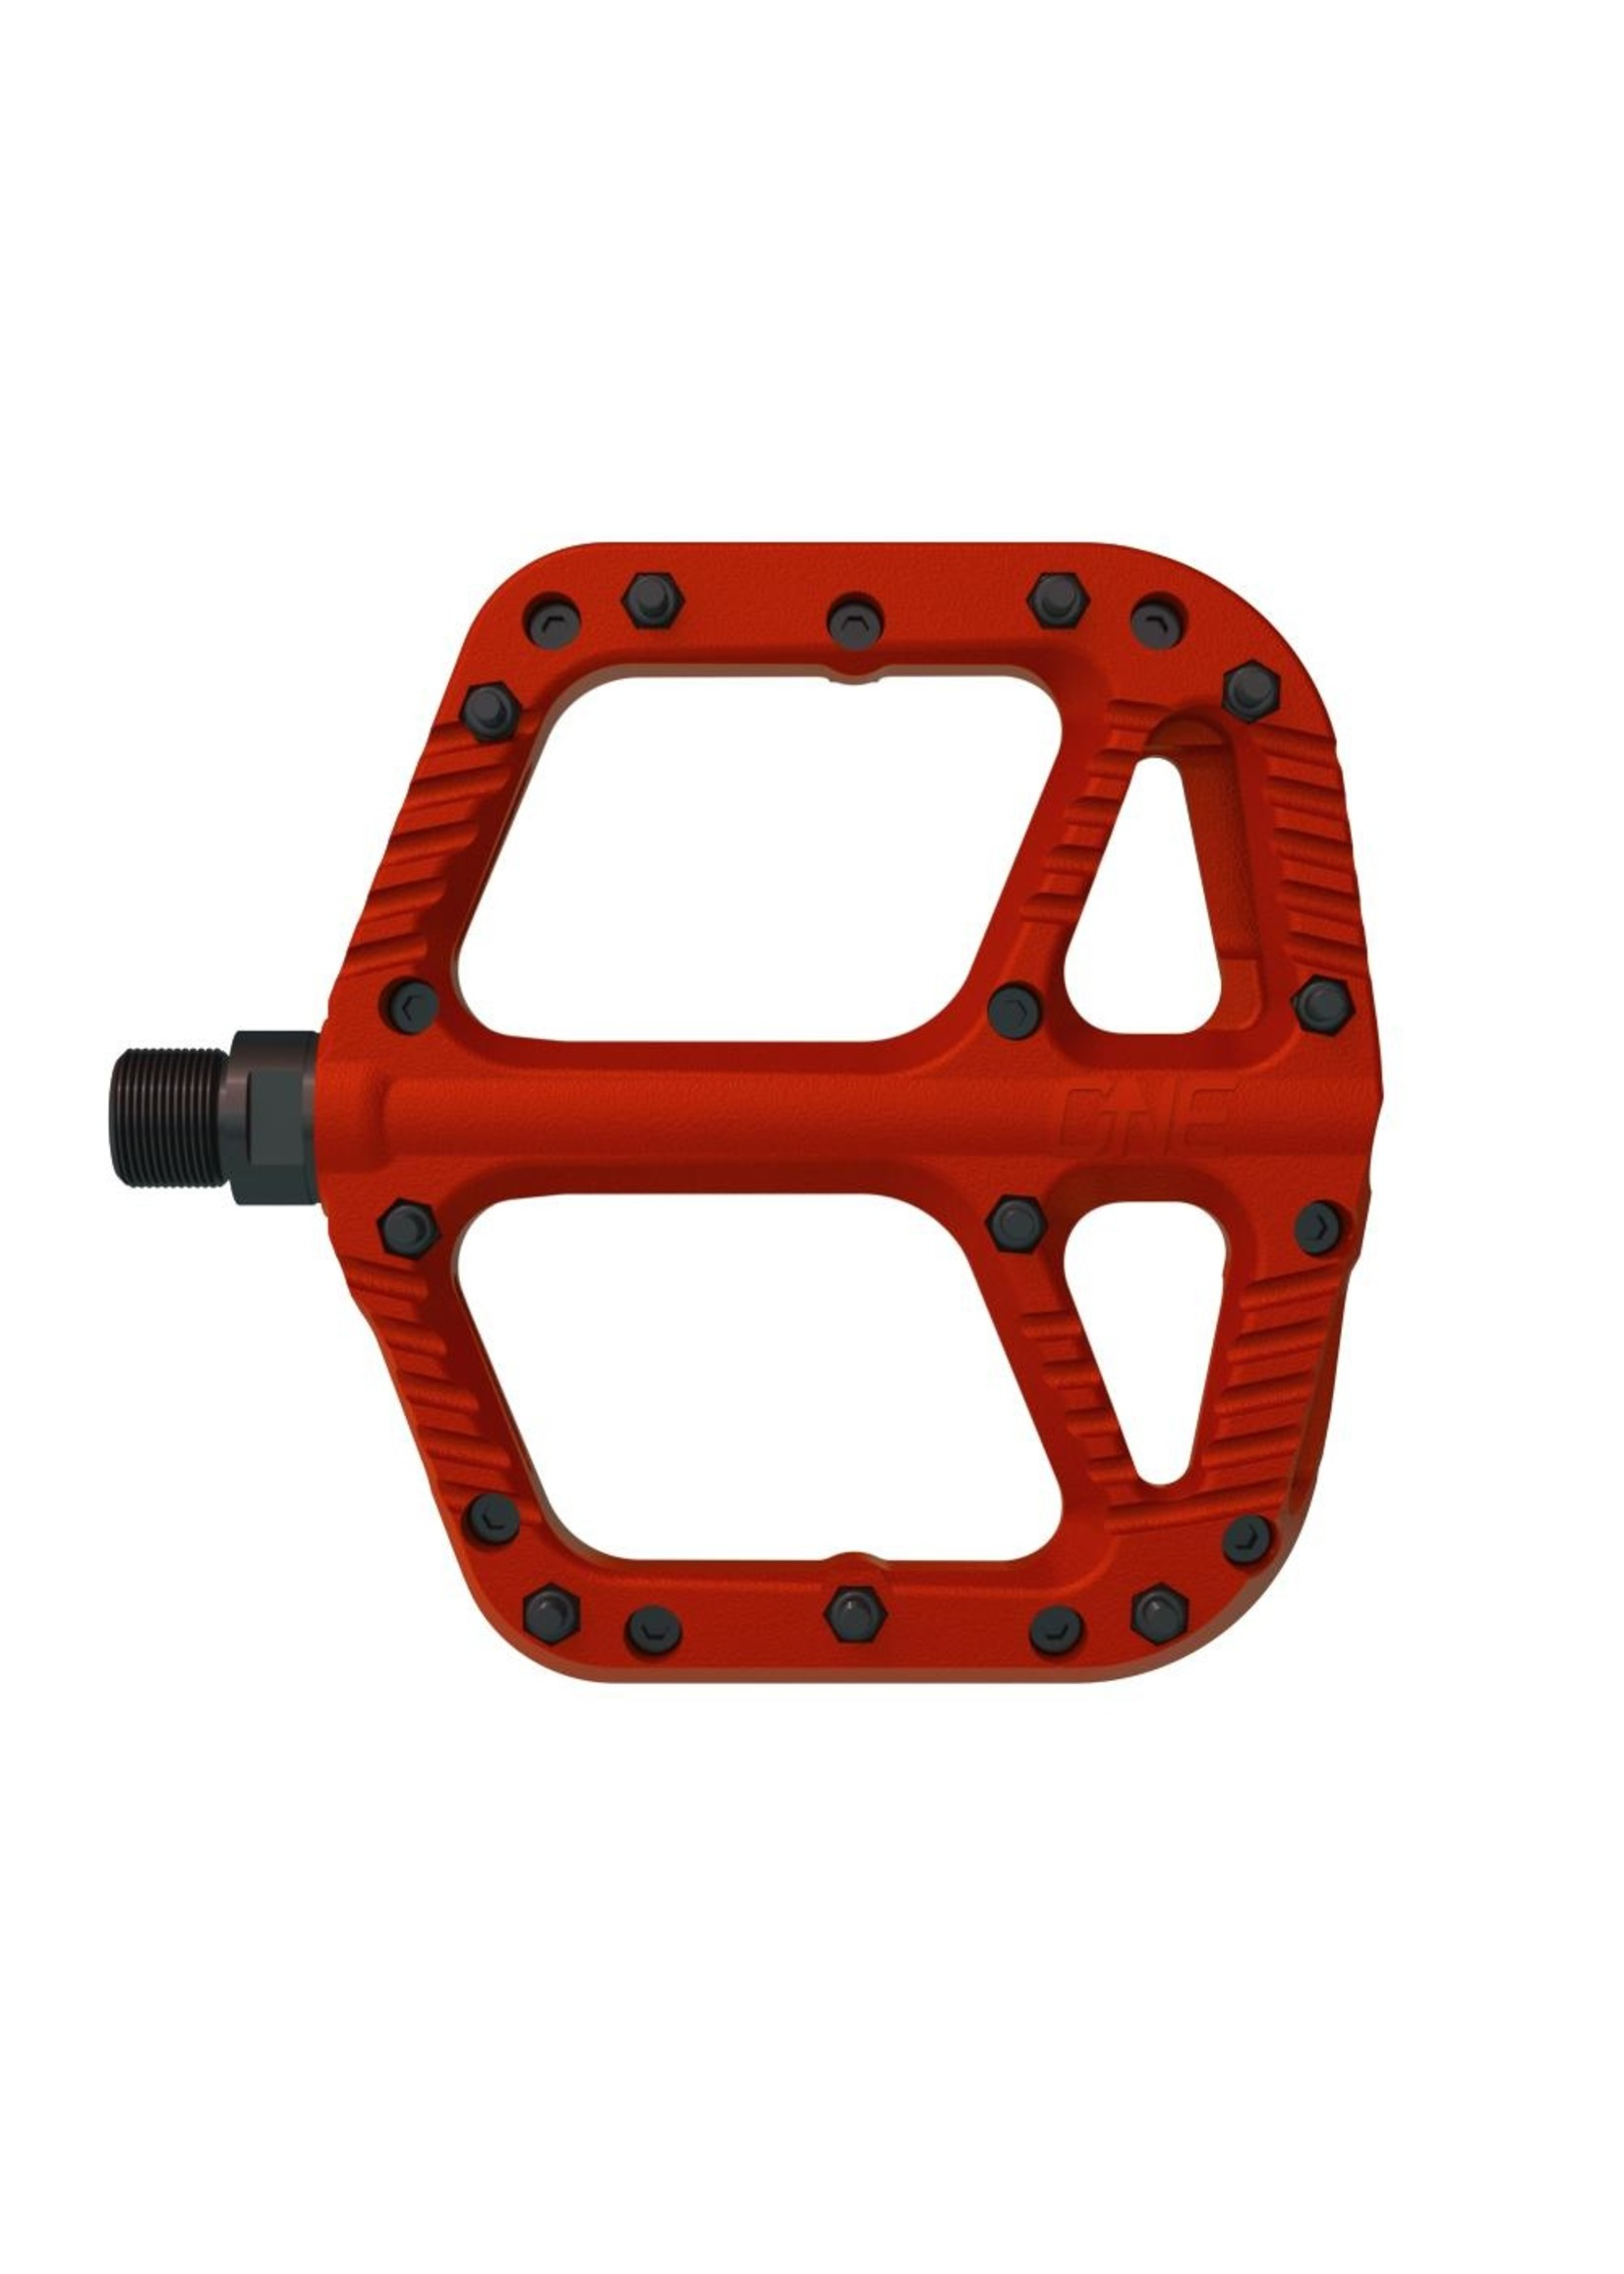 ONE UP COMPONENTS OneUp Composite Pedals